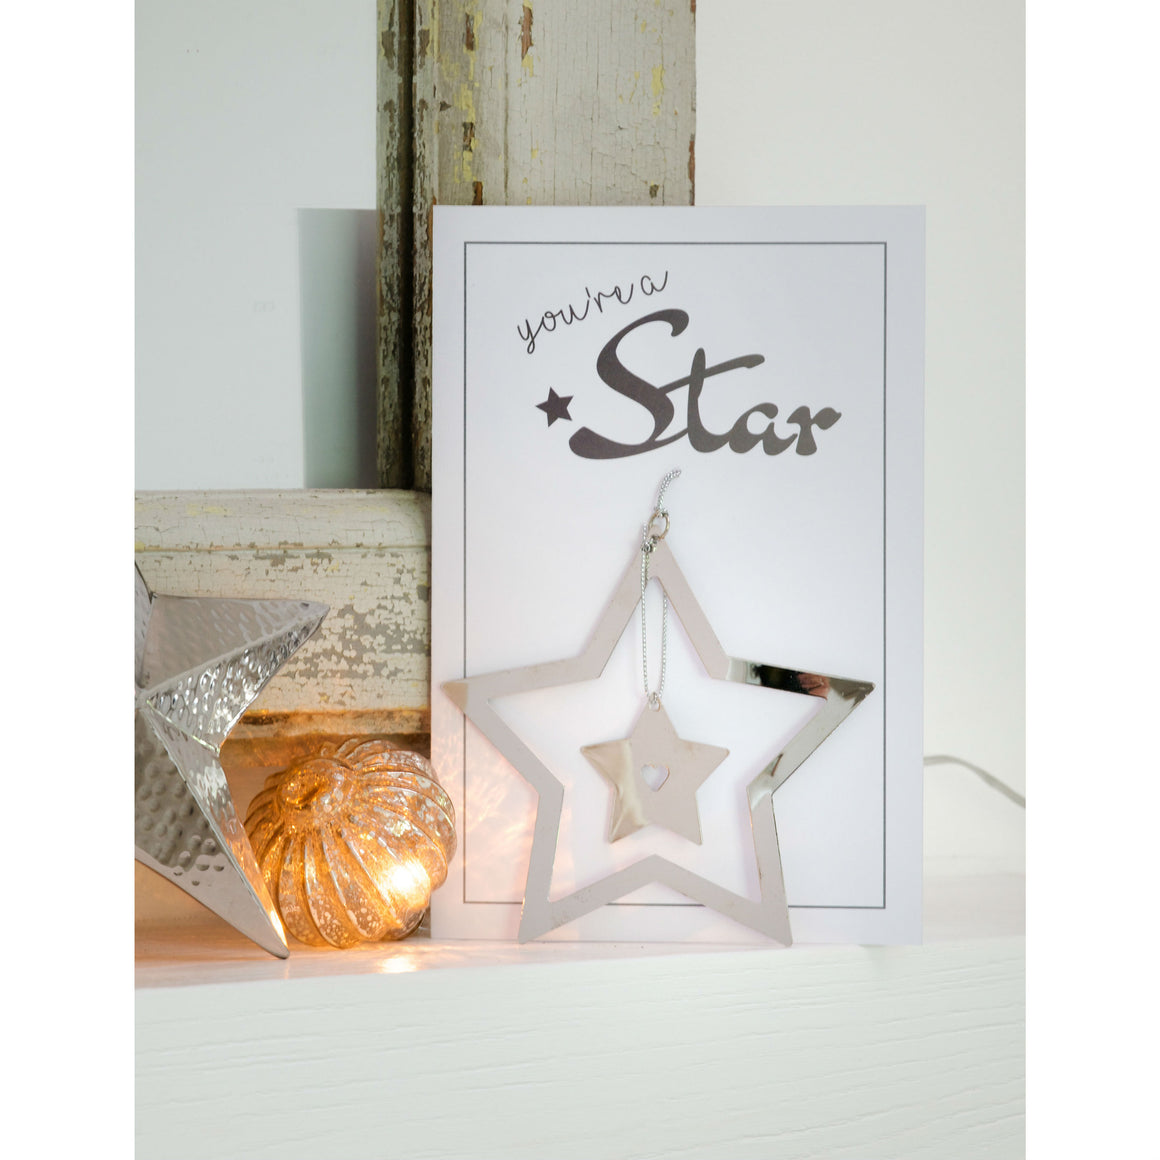 You're A Star Greetings Card and Keepsake